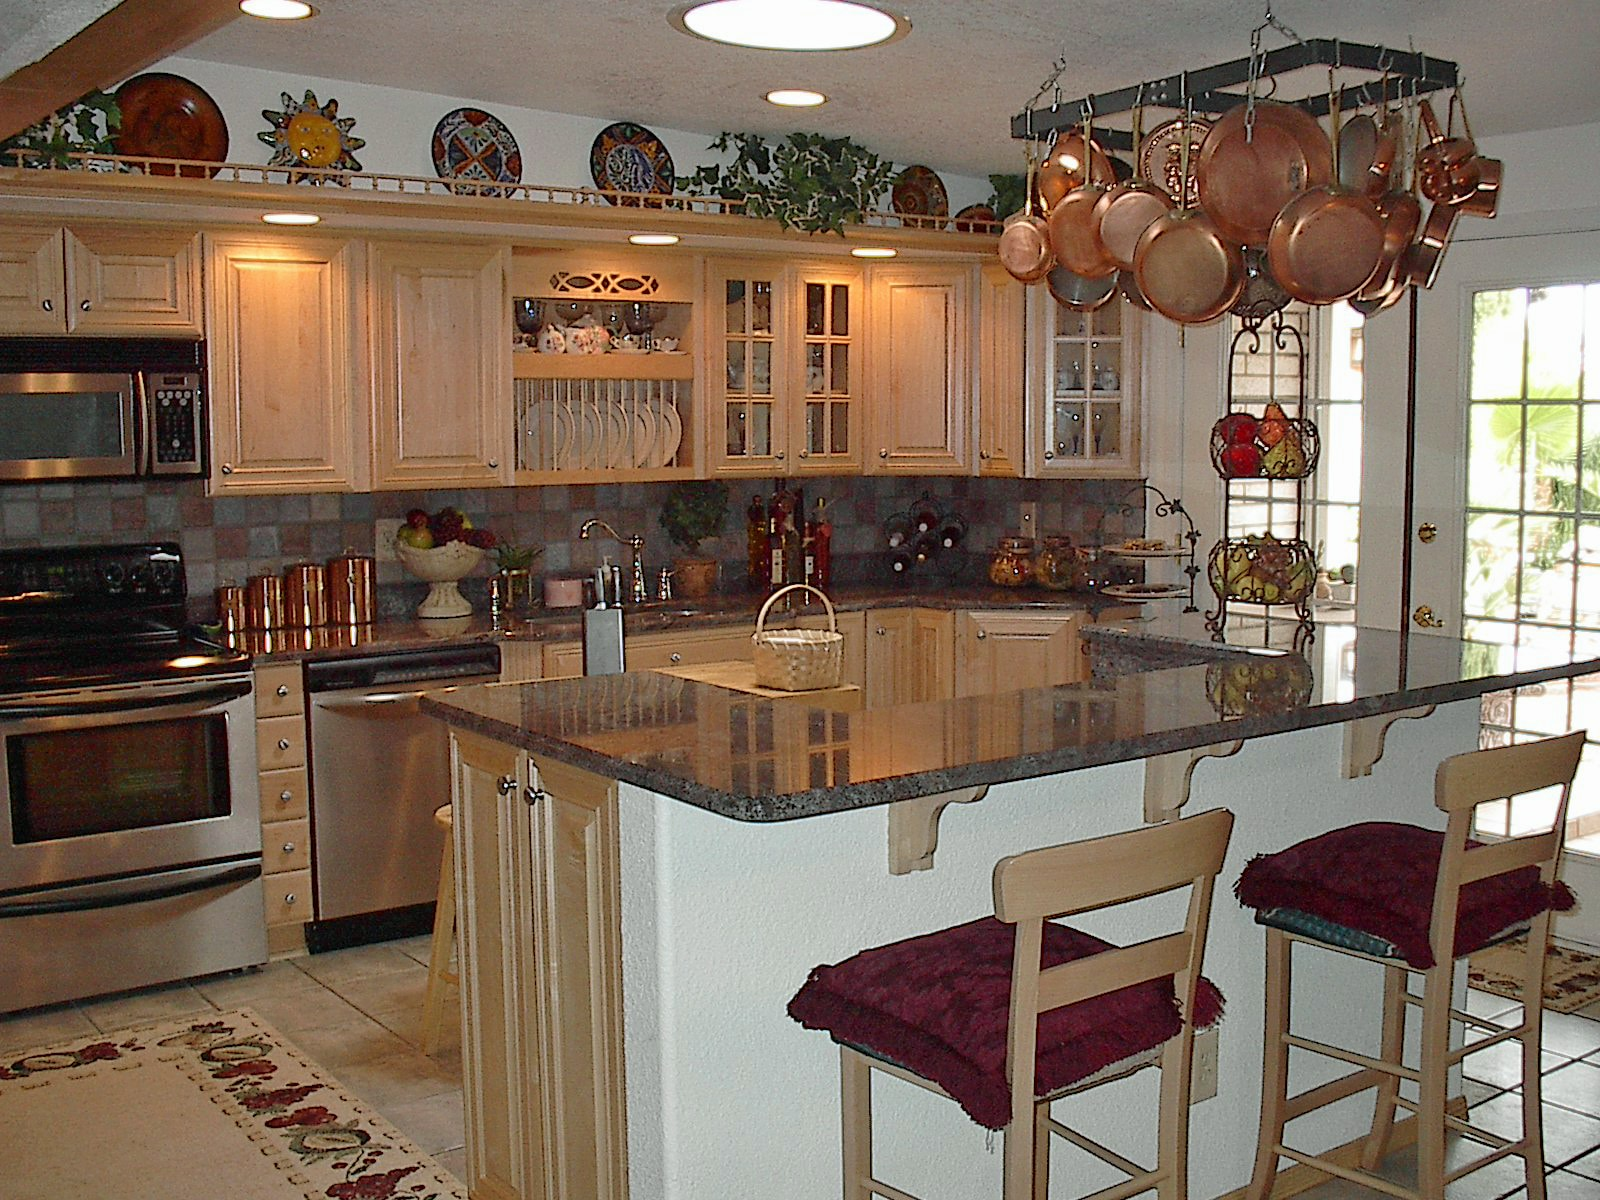 sierra remodeling kitchen remodel 001b sierra remodeling On j kitchen sierra vista menu